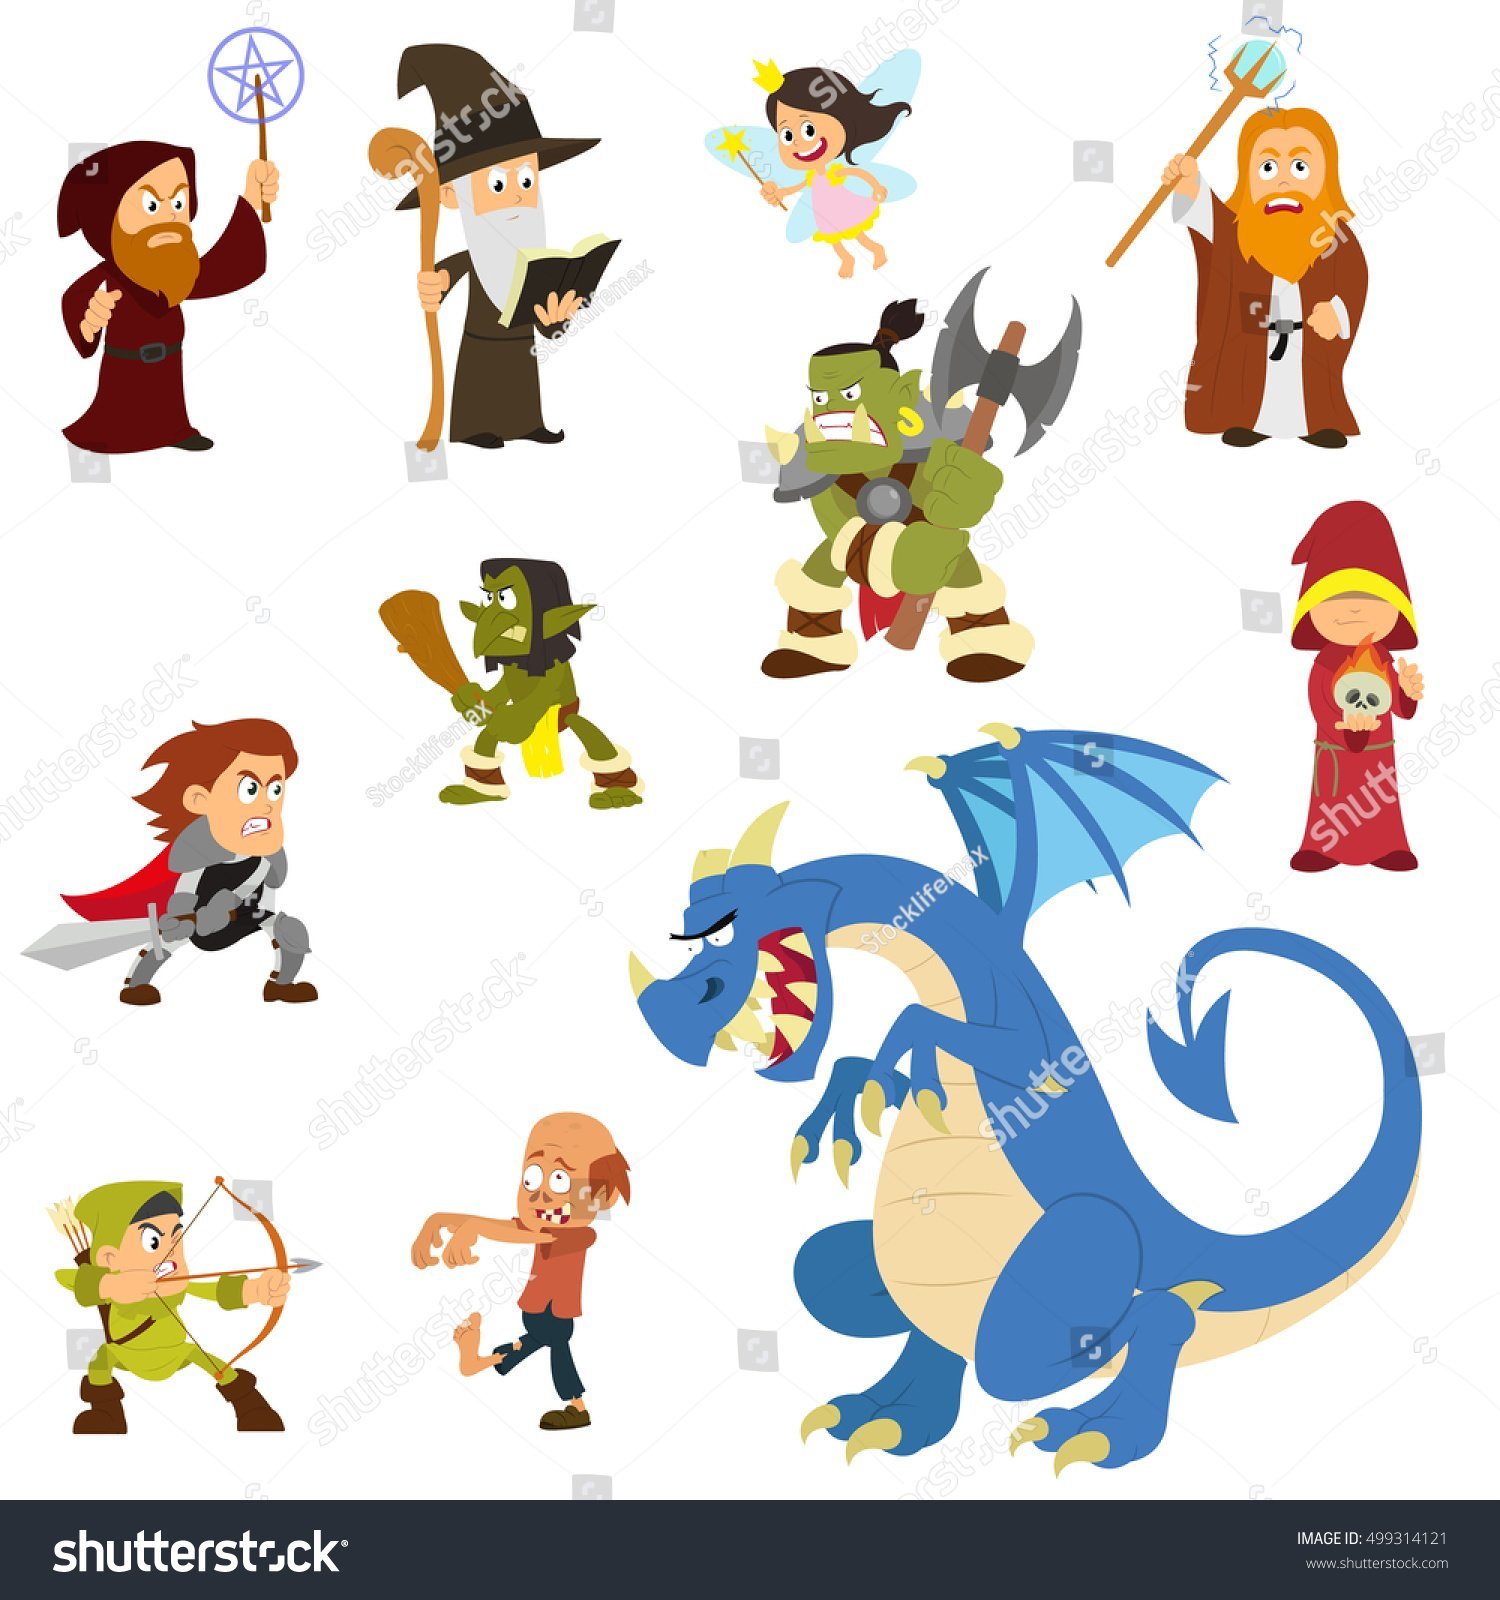 Fairy Tale Characters Fantasy Heroes Villains Stock Vector 1500x1600